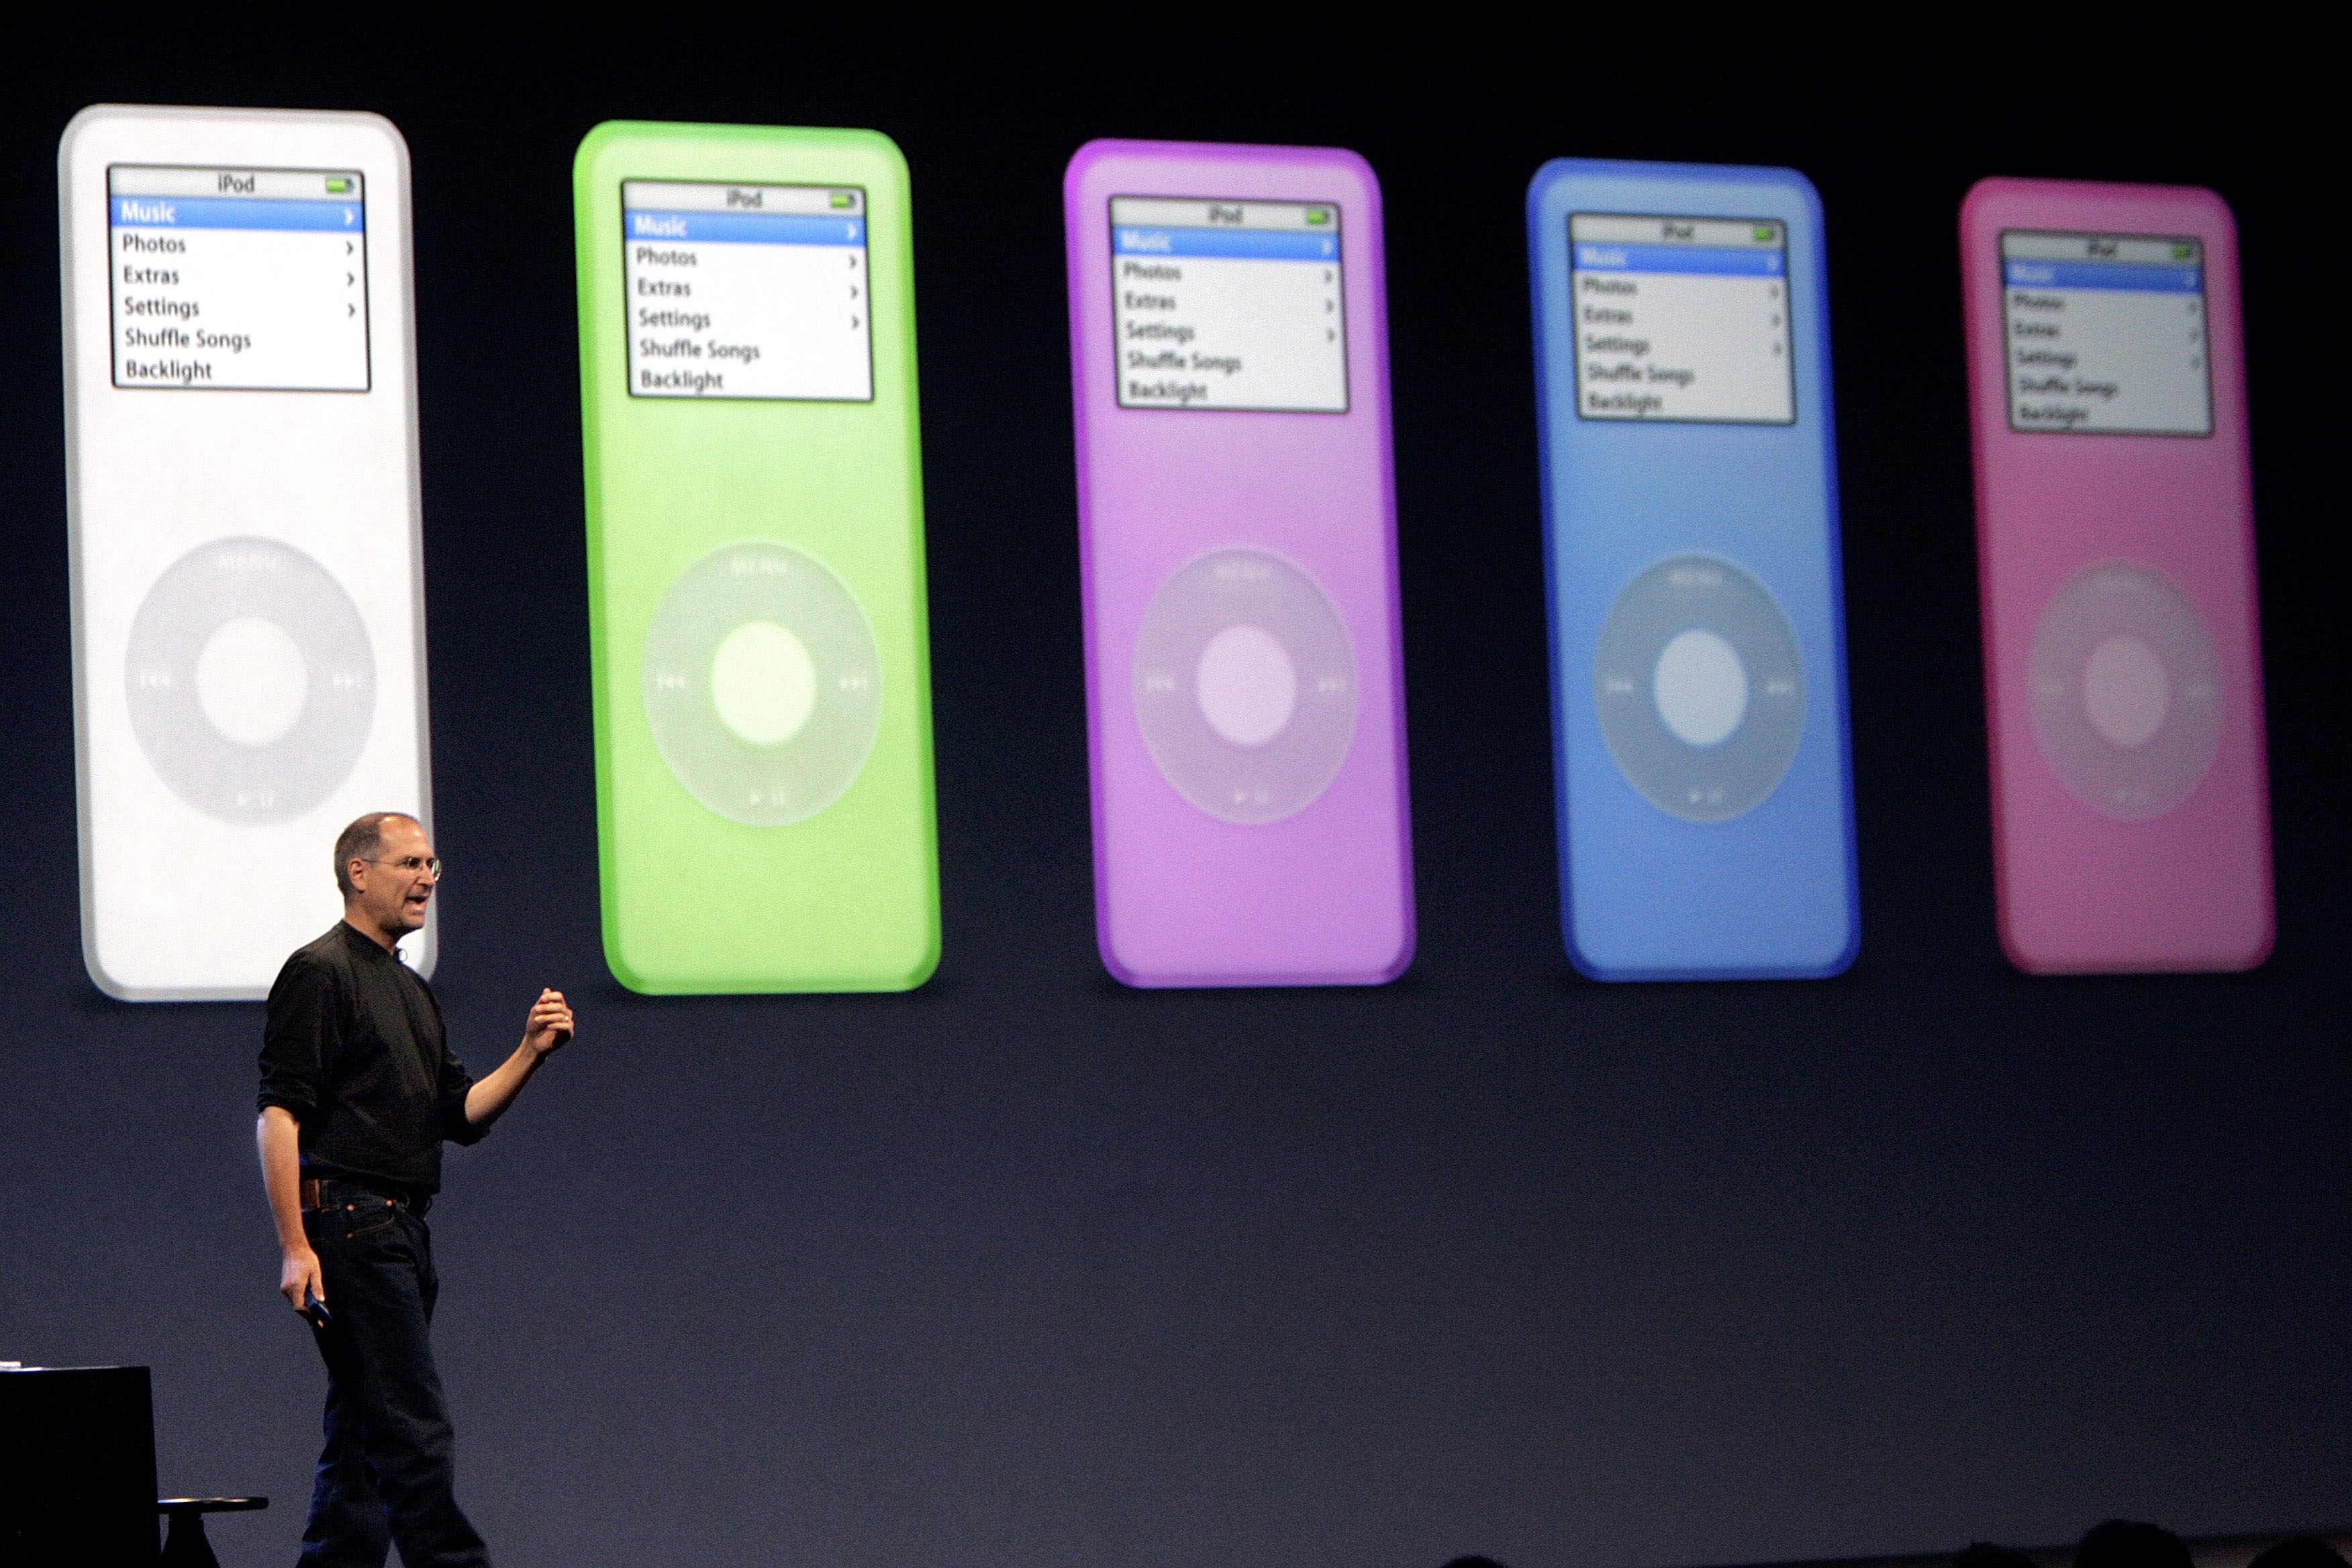 ipod shuffle instructions for beginners